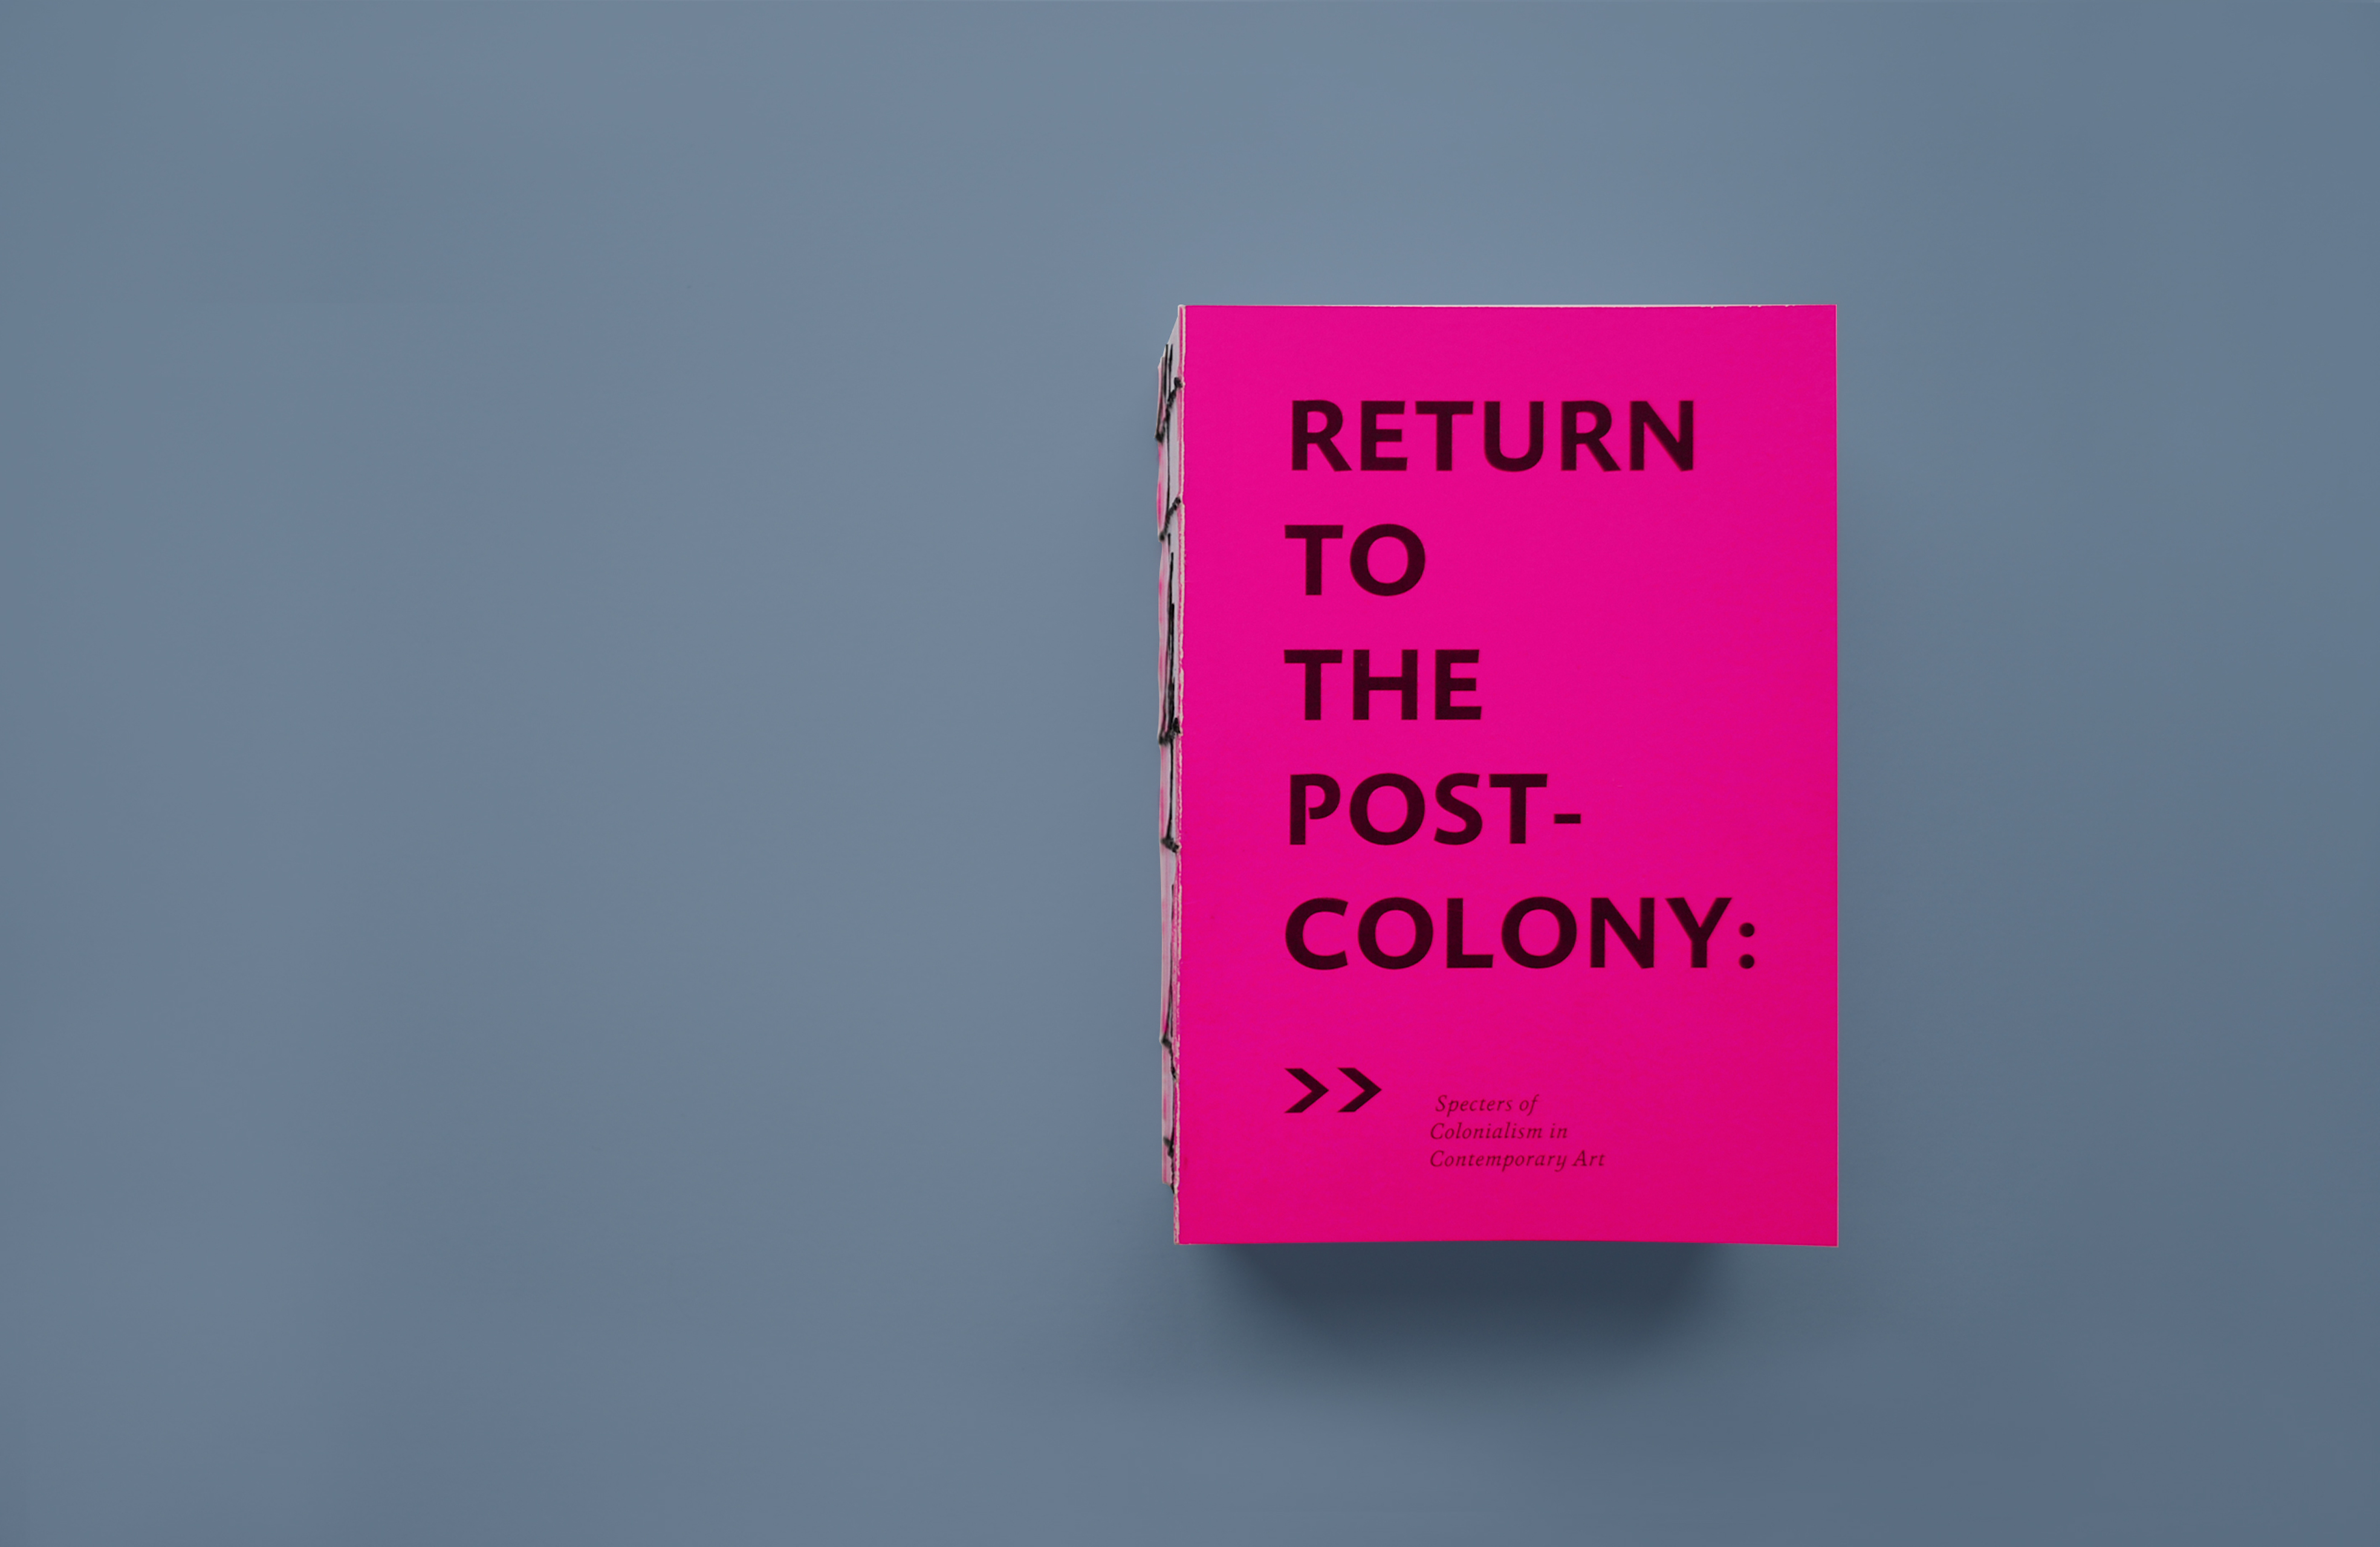 Return to the Postcolony